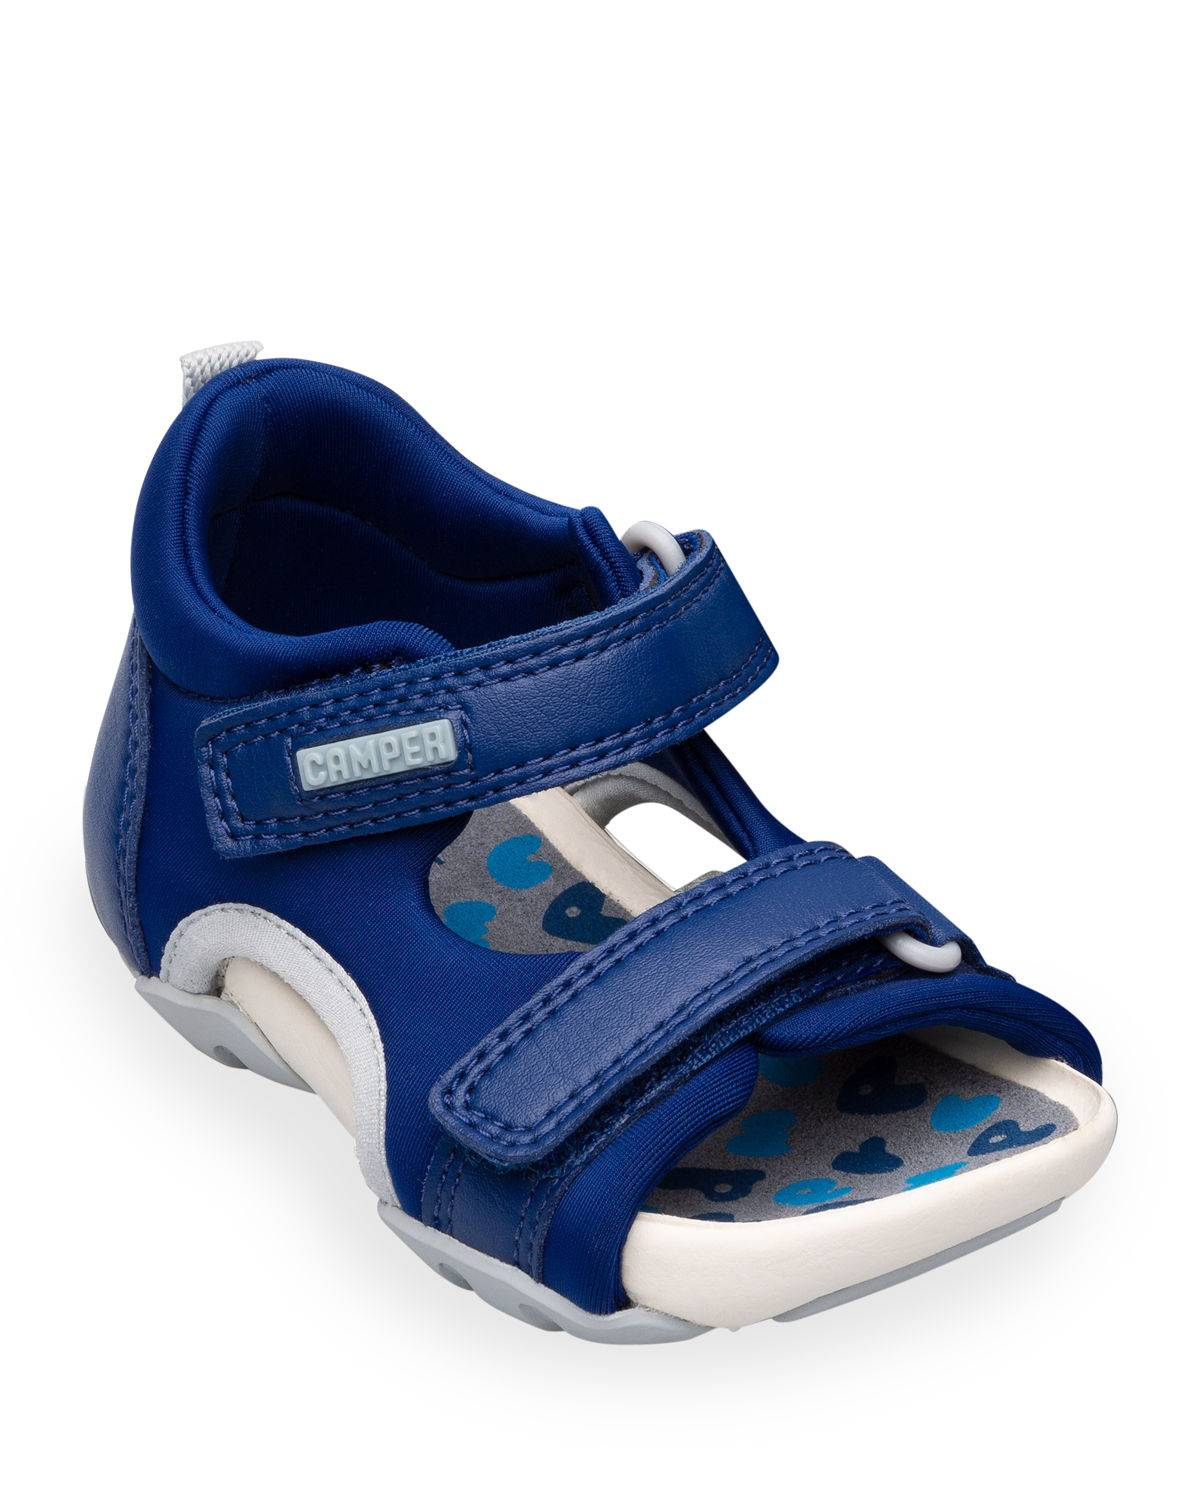 Camper Kid's Ous Grip-Strap Sport Sandals, Baby/Toddlers - Size: 21EU (5US Baby)